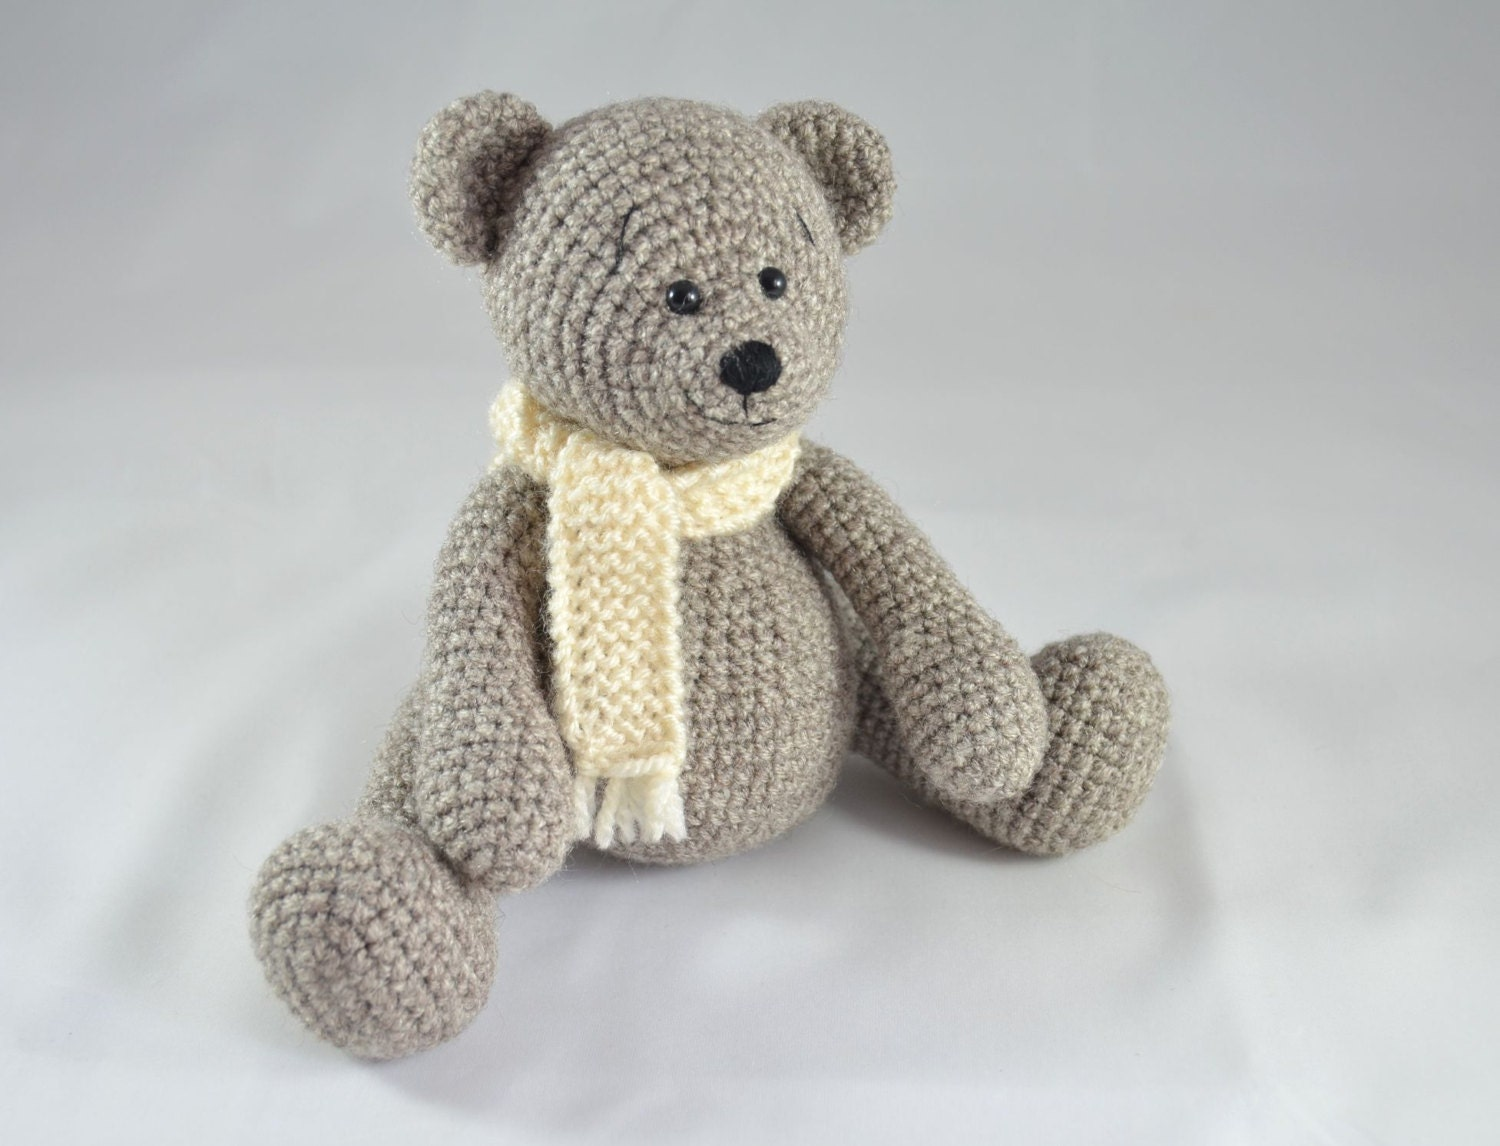 Amigurumi Little Teddy Bear : crochet amigurumi bear toy little teddy with white scarf